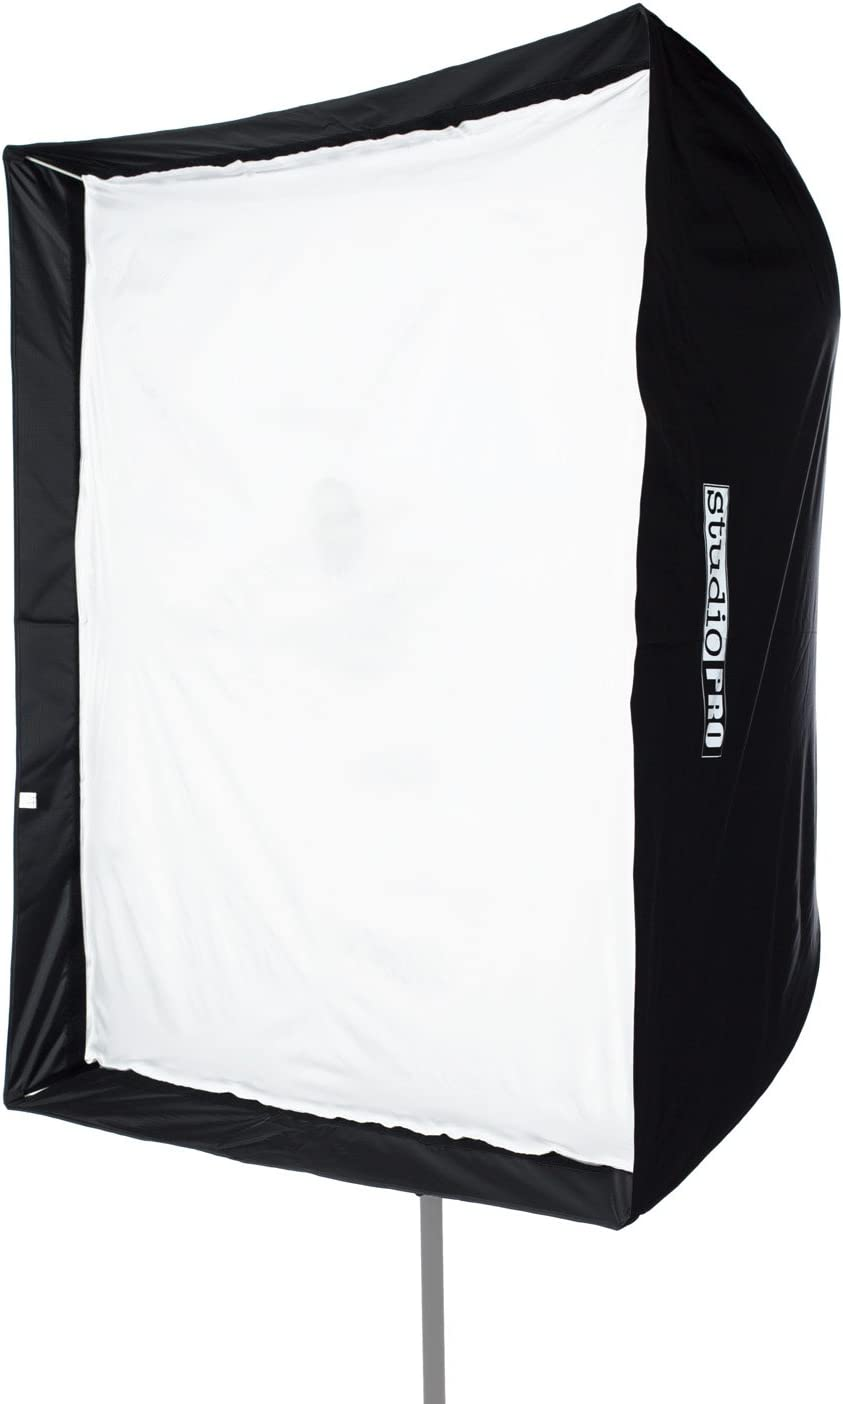 """Fovitec - 1x 50"""" Photography Speedlight Softbox - [Easy Set-up][Durable Nylon][Collapsible][Grid Not Included][Lightweight]"""